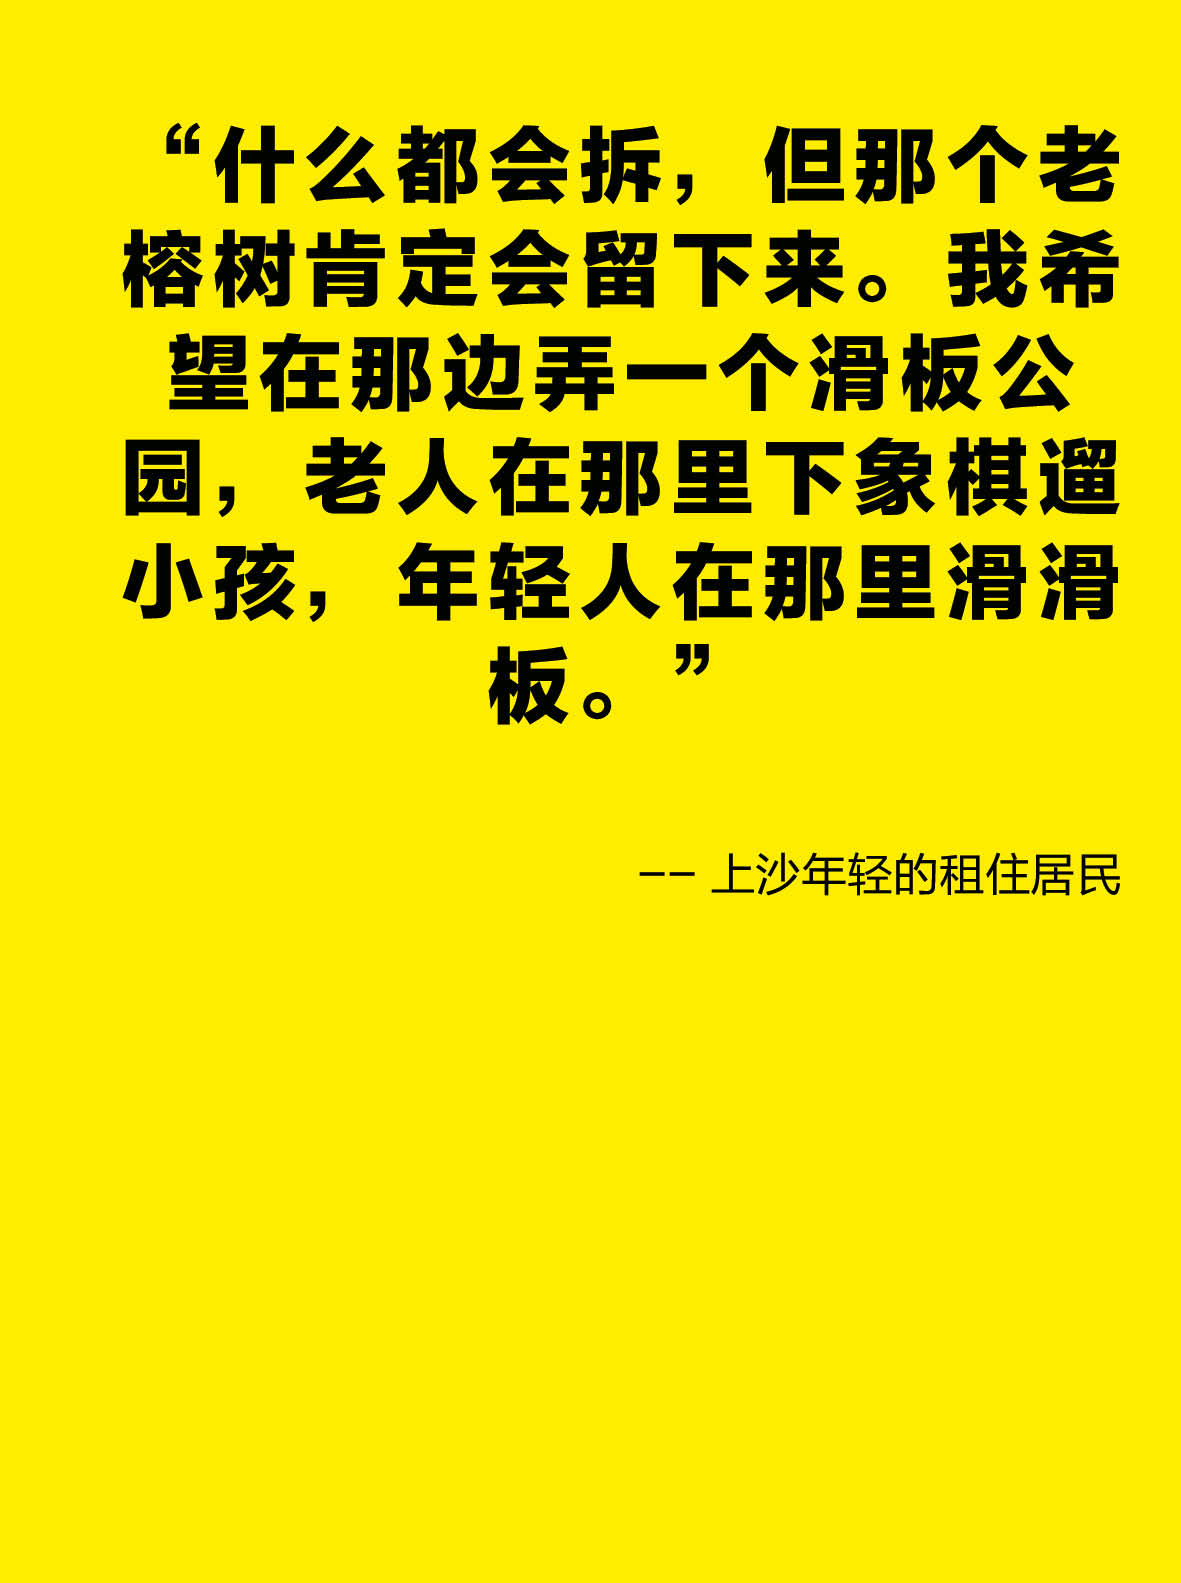 20180106_Shangsha Quotes test03.jpg